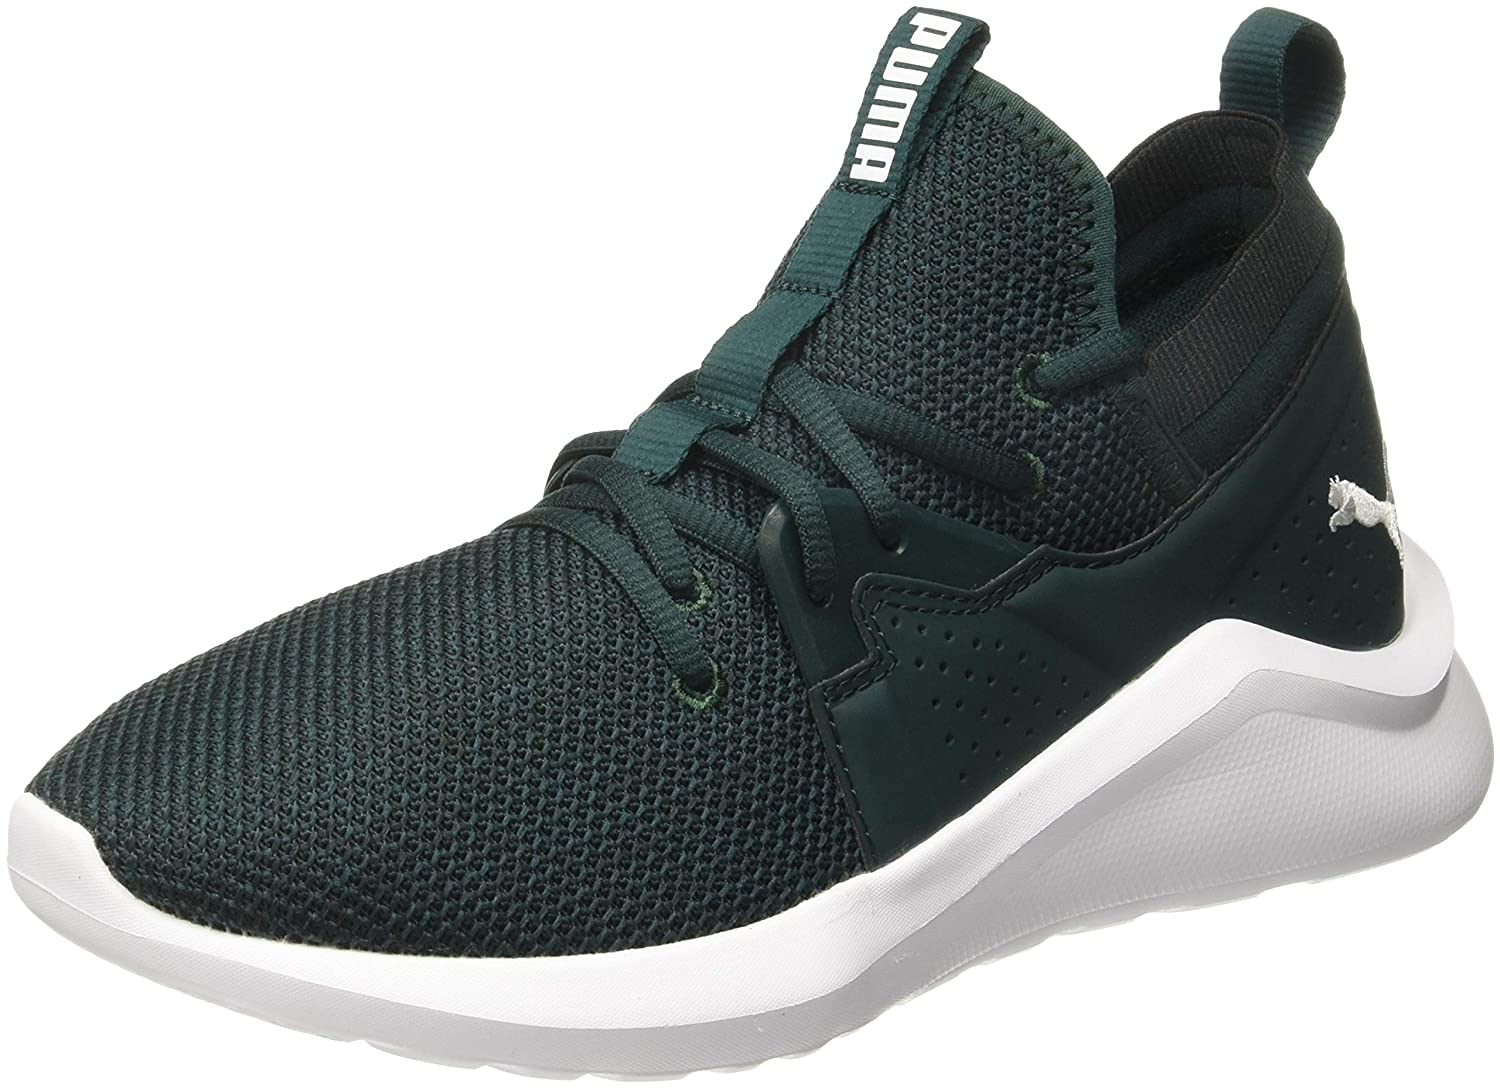 6c6c1717c21 Puma Men s Emergence Running Shoes  Buy Online at Low Prices in India -  Amazon.in